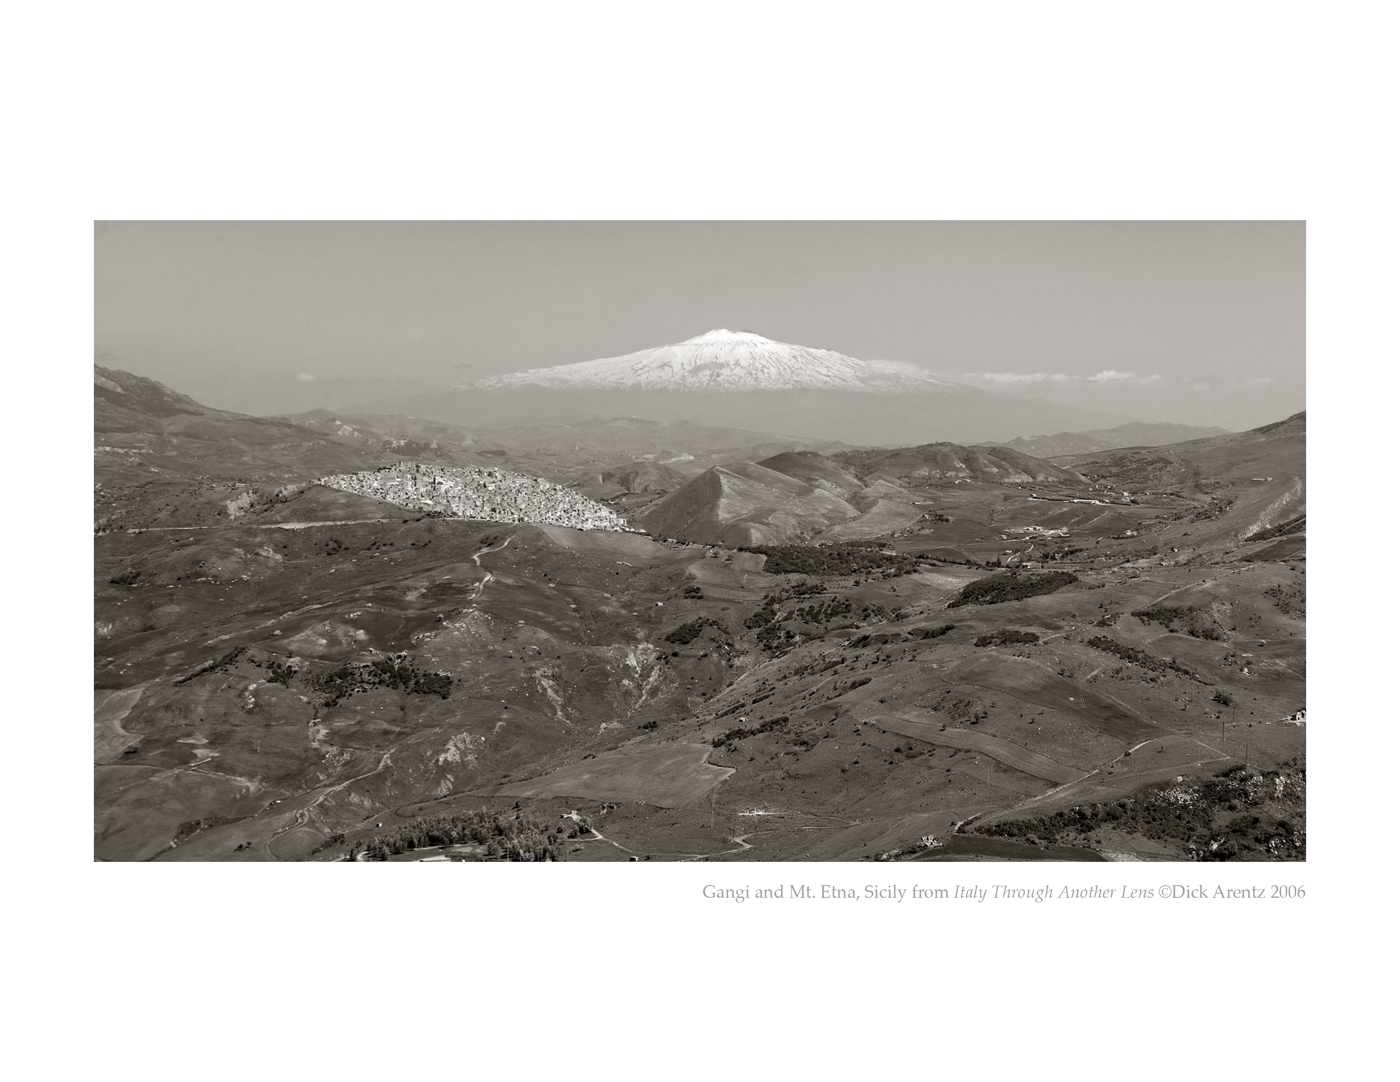 Gangi and Mt. Etna, Sicily - Italy Through Another Lens